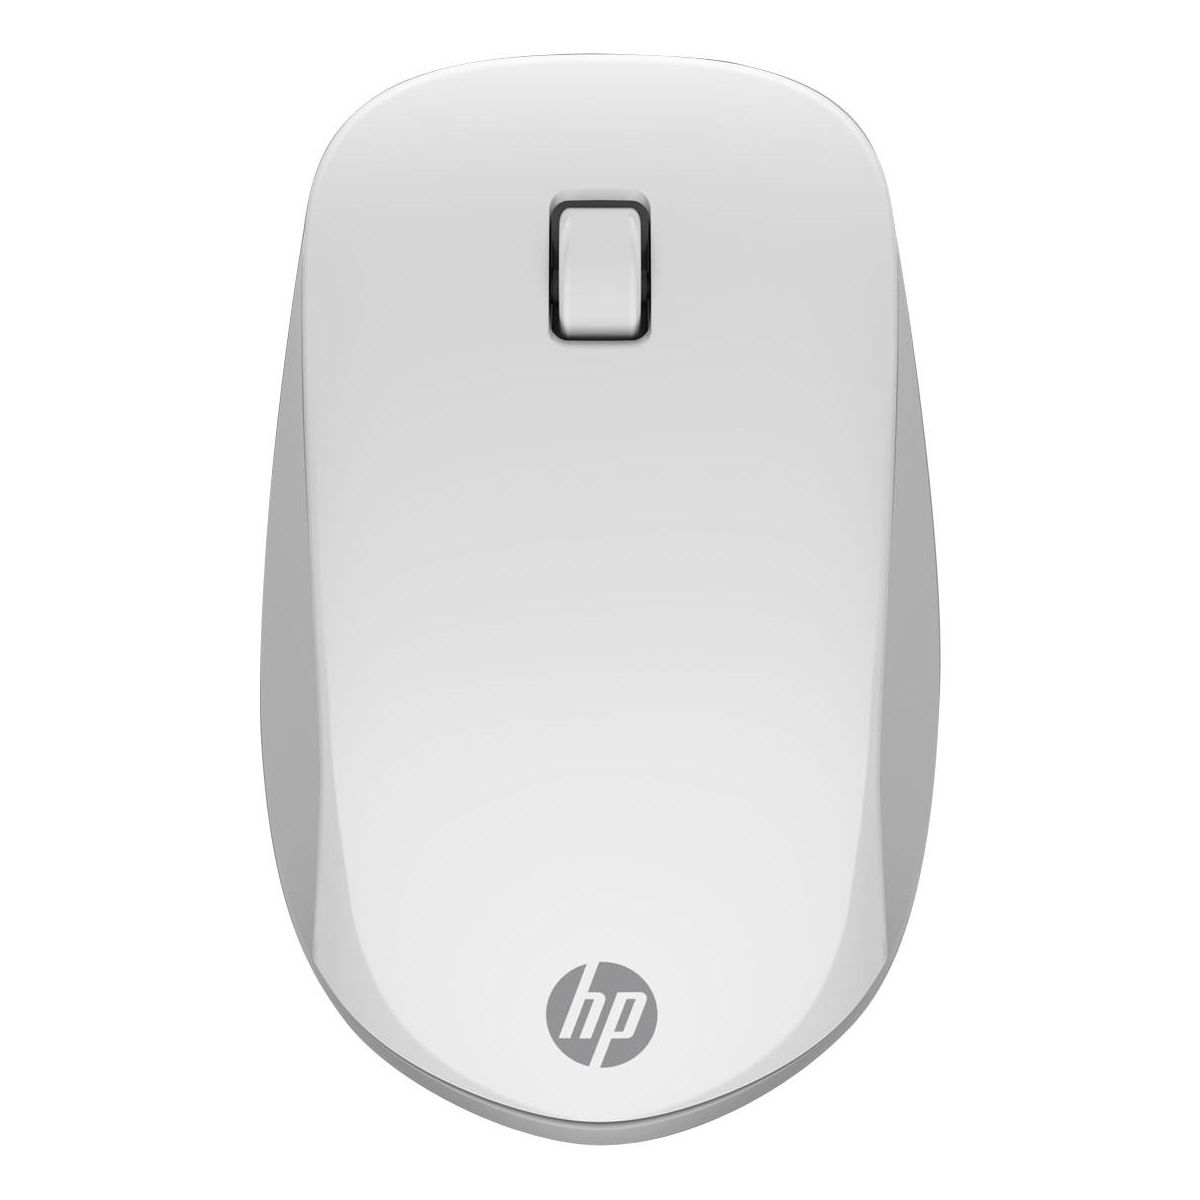 Souris sans fil HP Z5000 Bluetooth